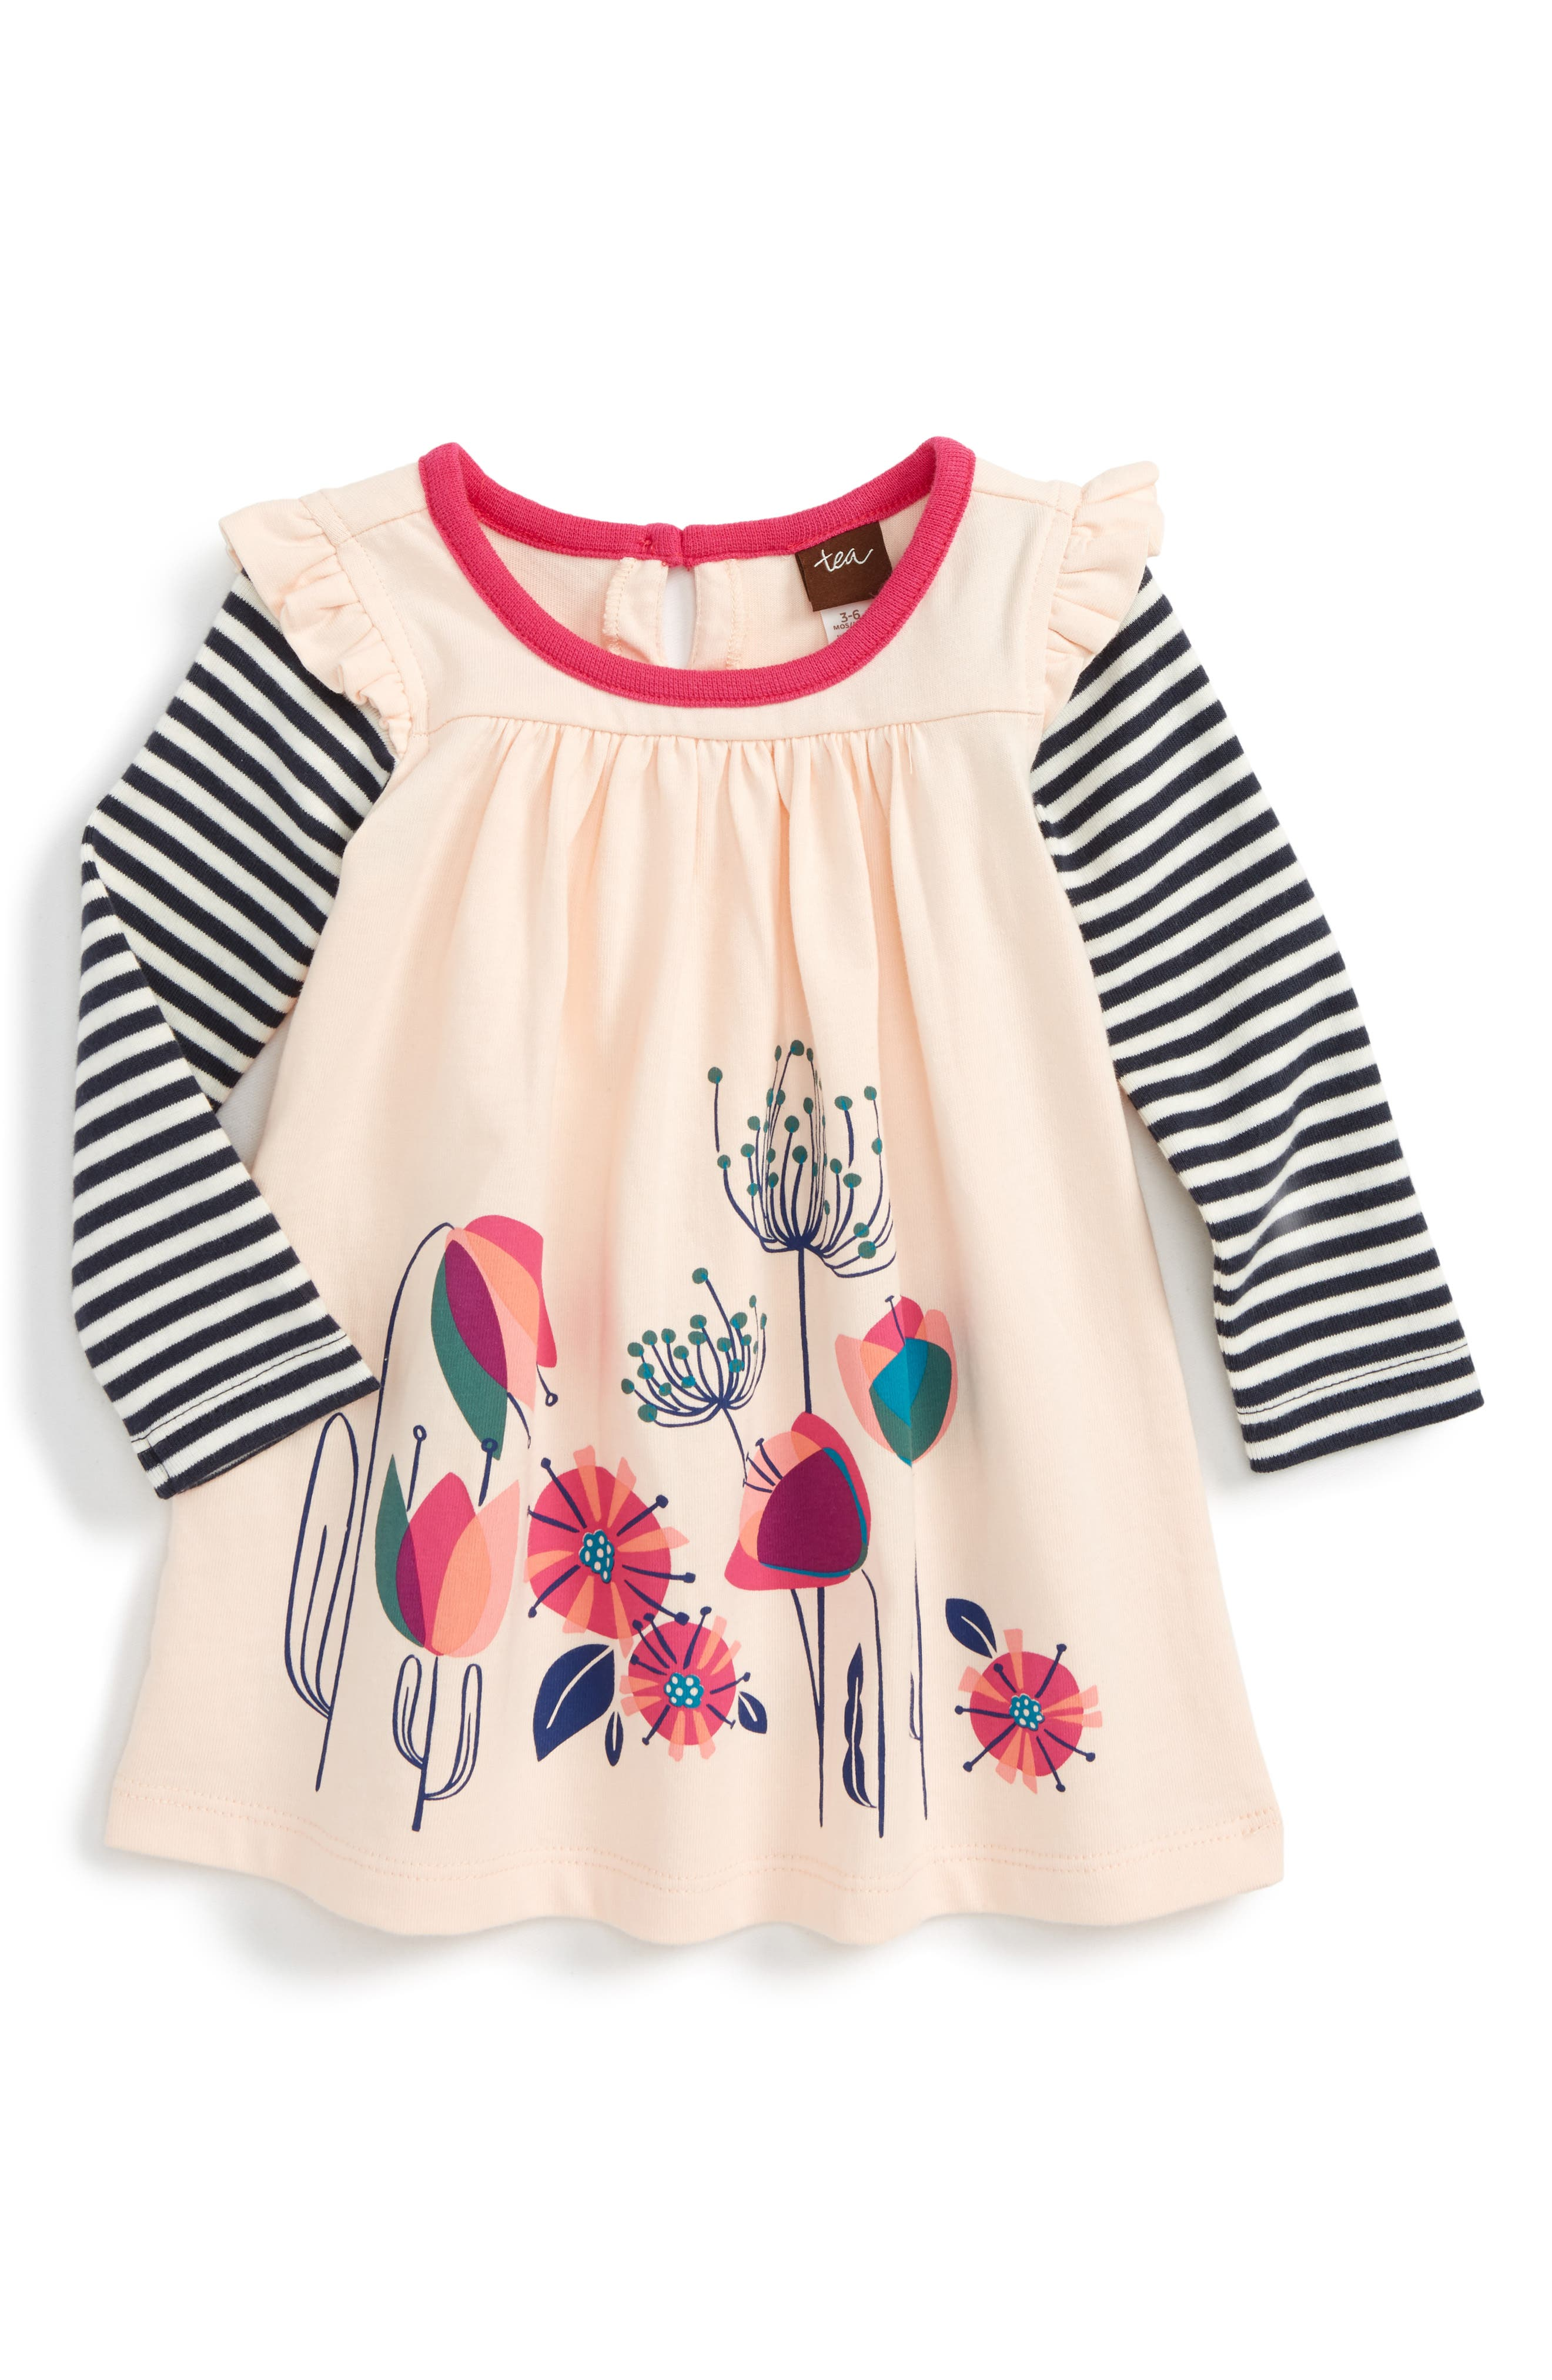 Tea Collection Glasgow Gardens Mighty Mini Double Decker Dress (Baby Girls)